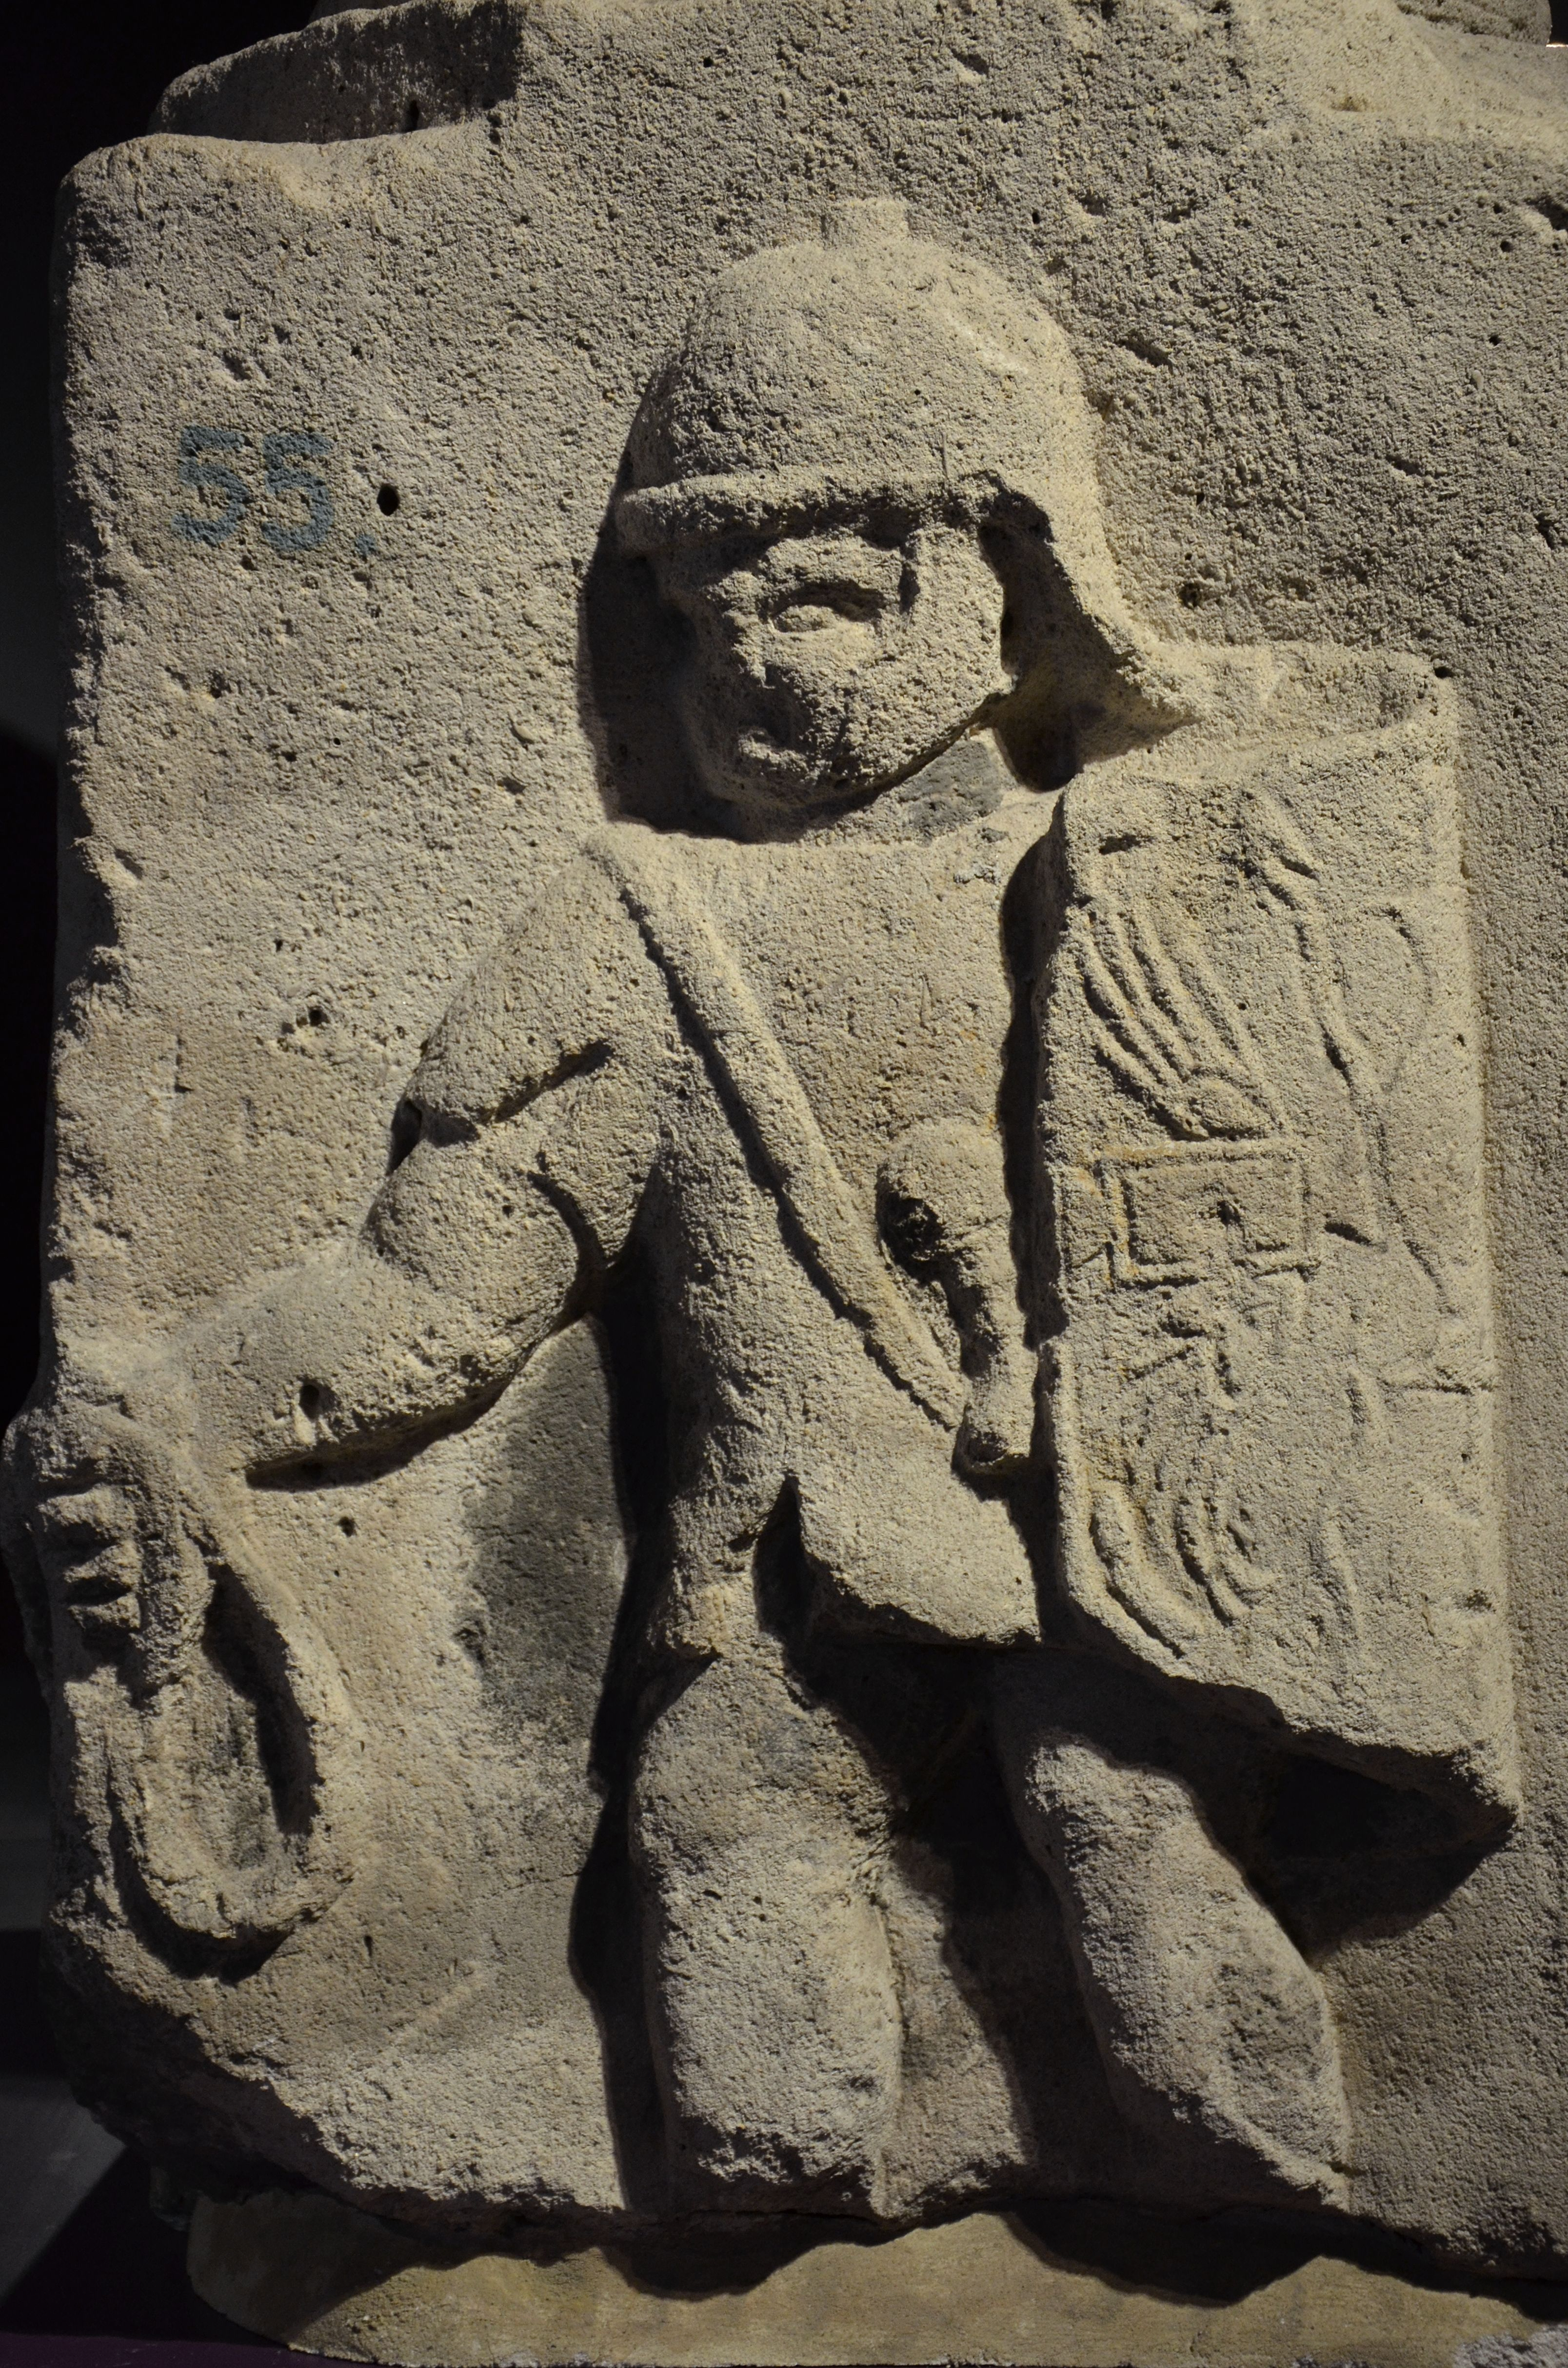 Relief pedestal depicting a Roman Legionary which once supported several columns in front of the headquarters of the Roman fortress of Mongotiacum, 2nd half of 1st century AD, Landesmuseum, Mainz